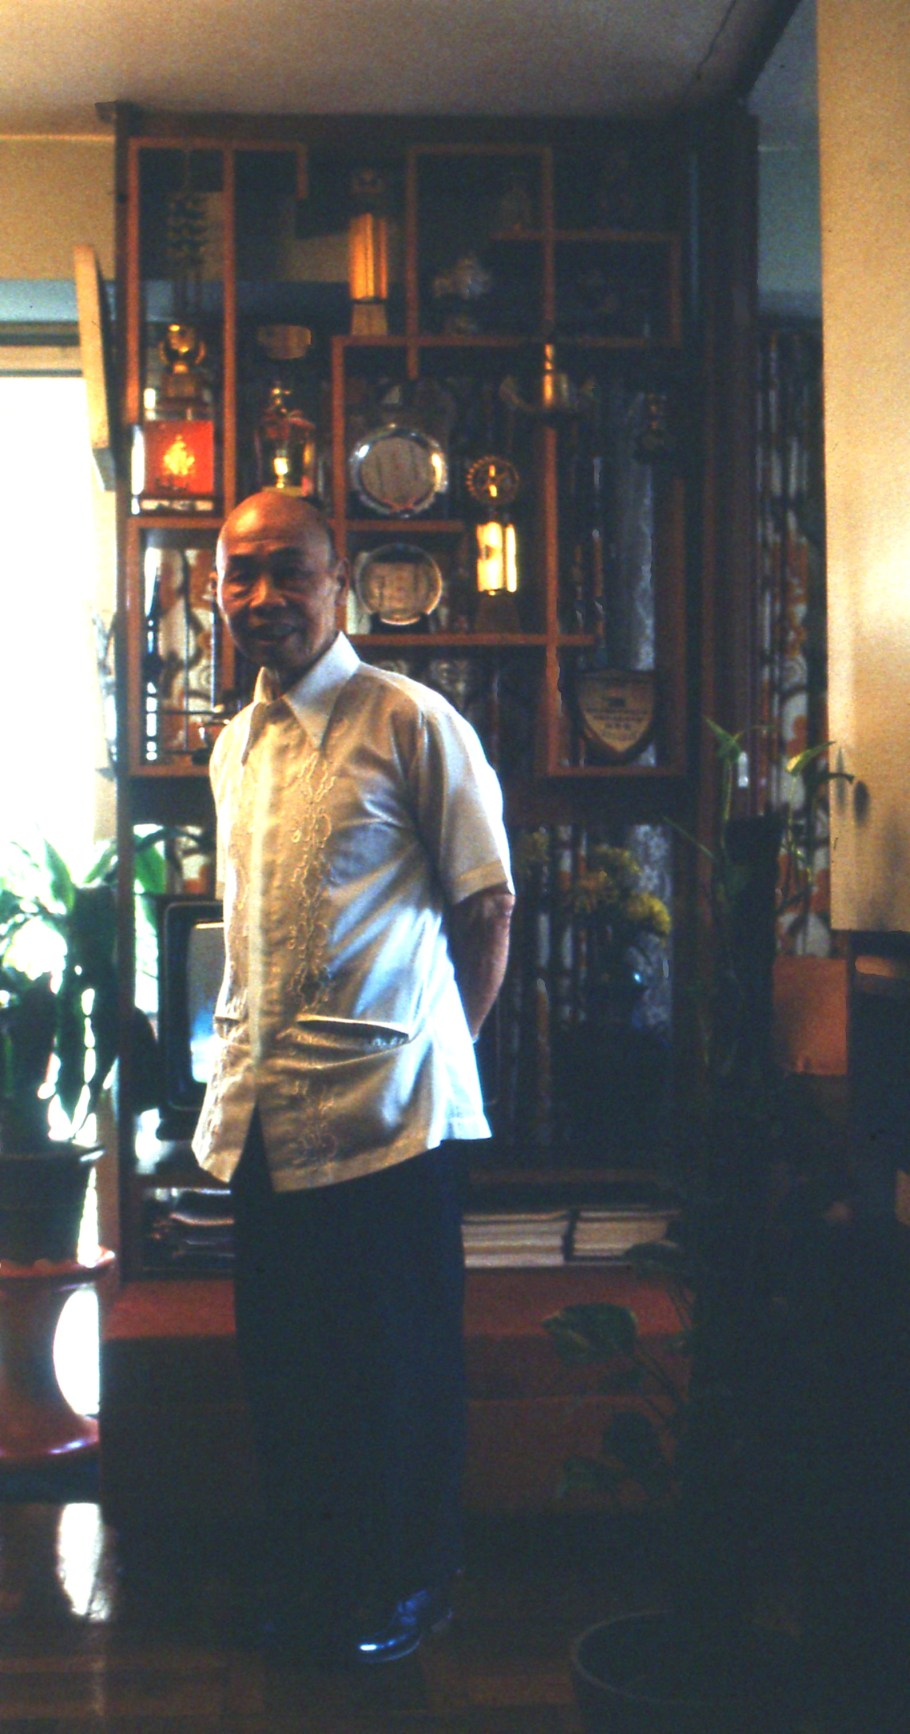 chan hon chung in his country house